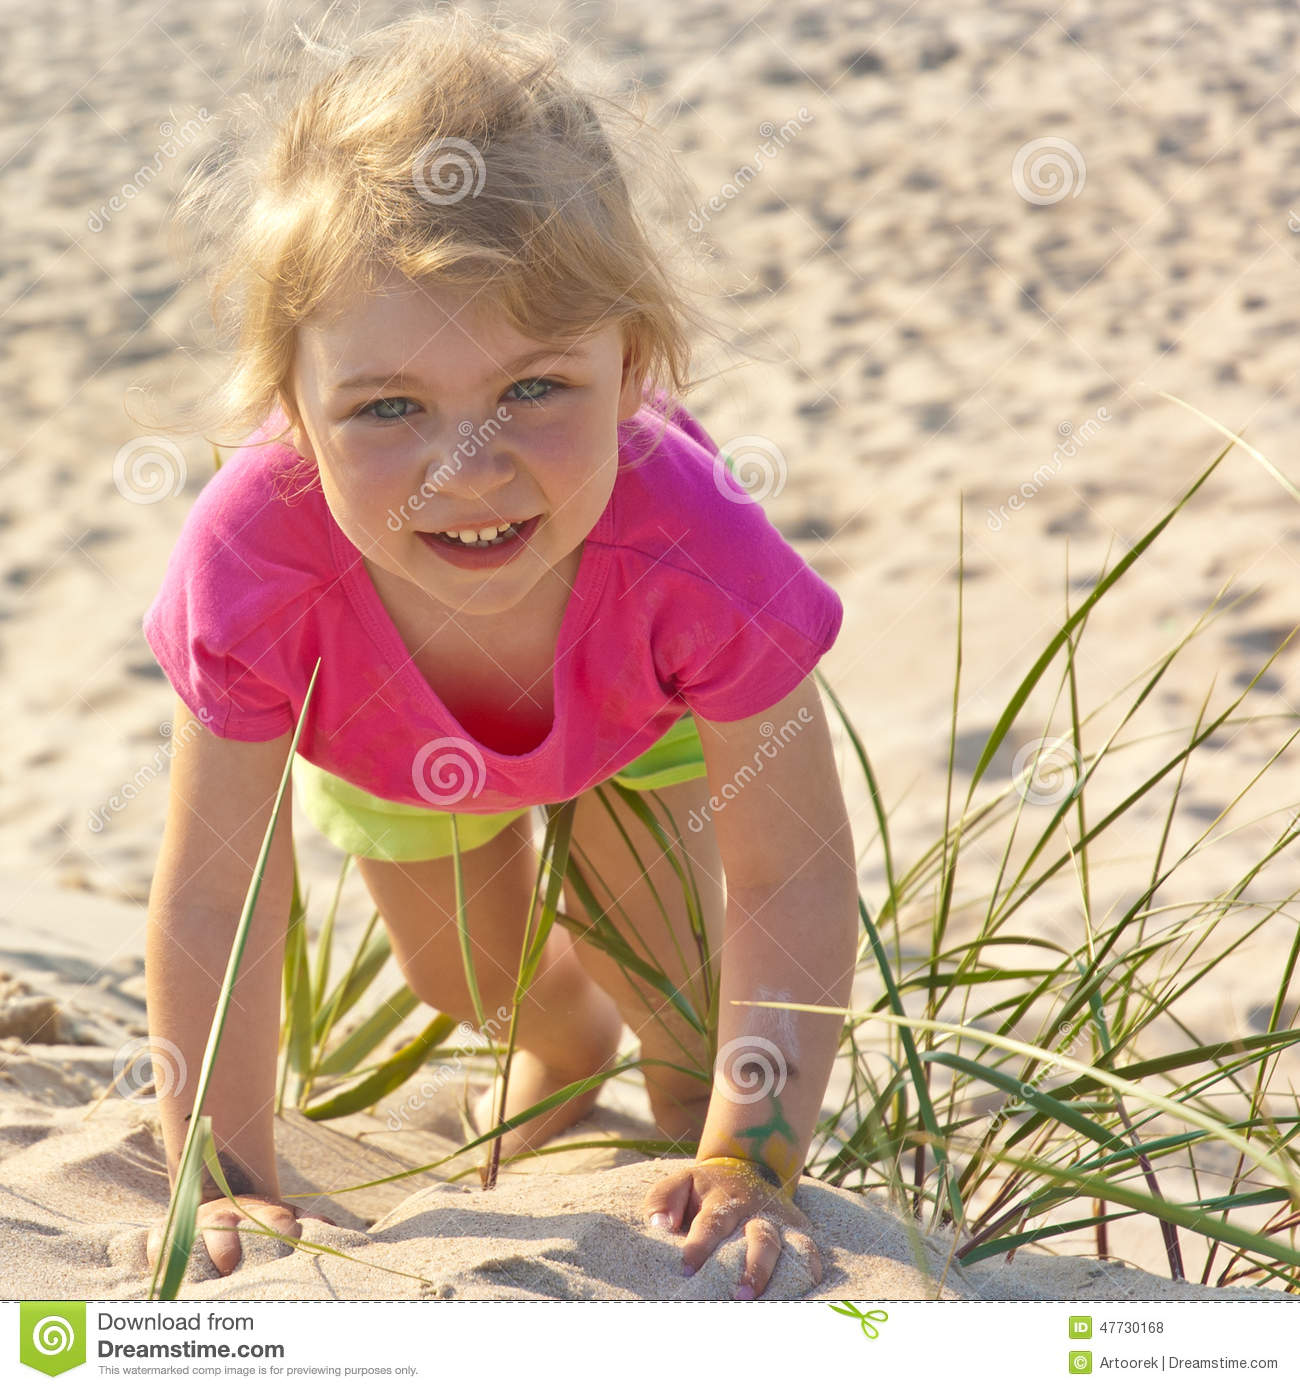 Adorable Little Girl Playing With Beach Toys During: Little Girl Playing In The Beach Sand Stock Photo